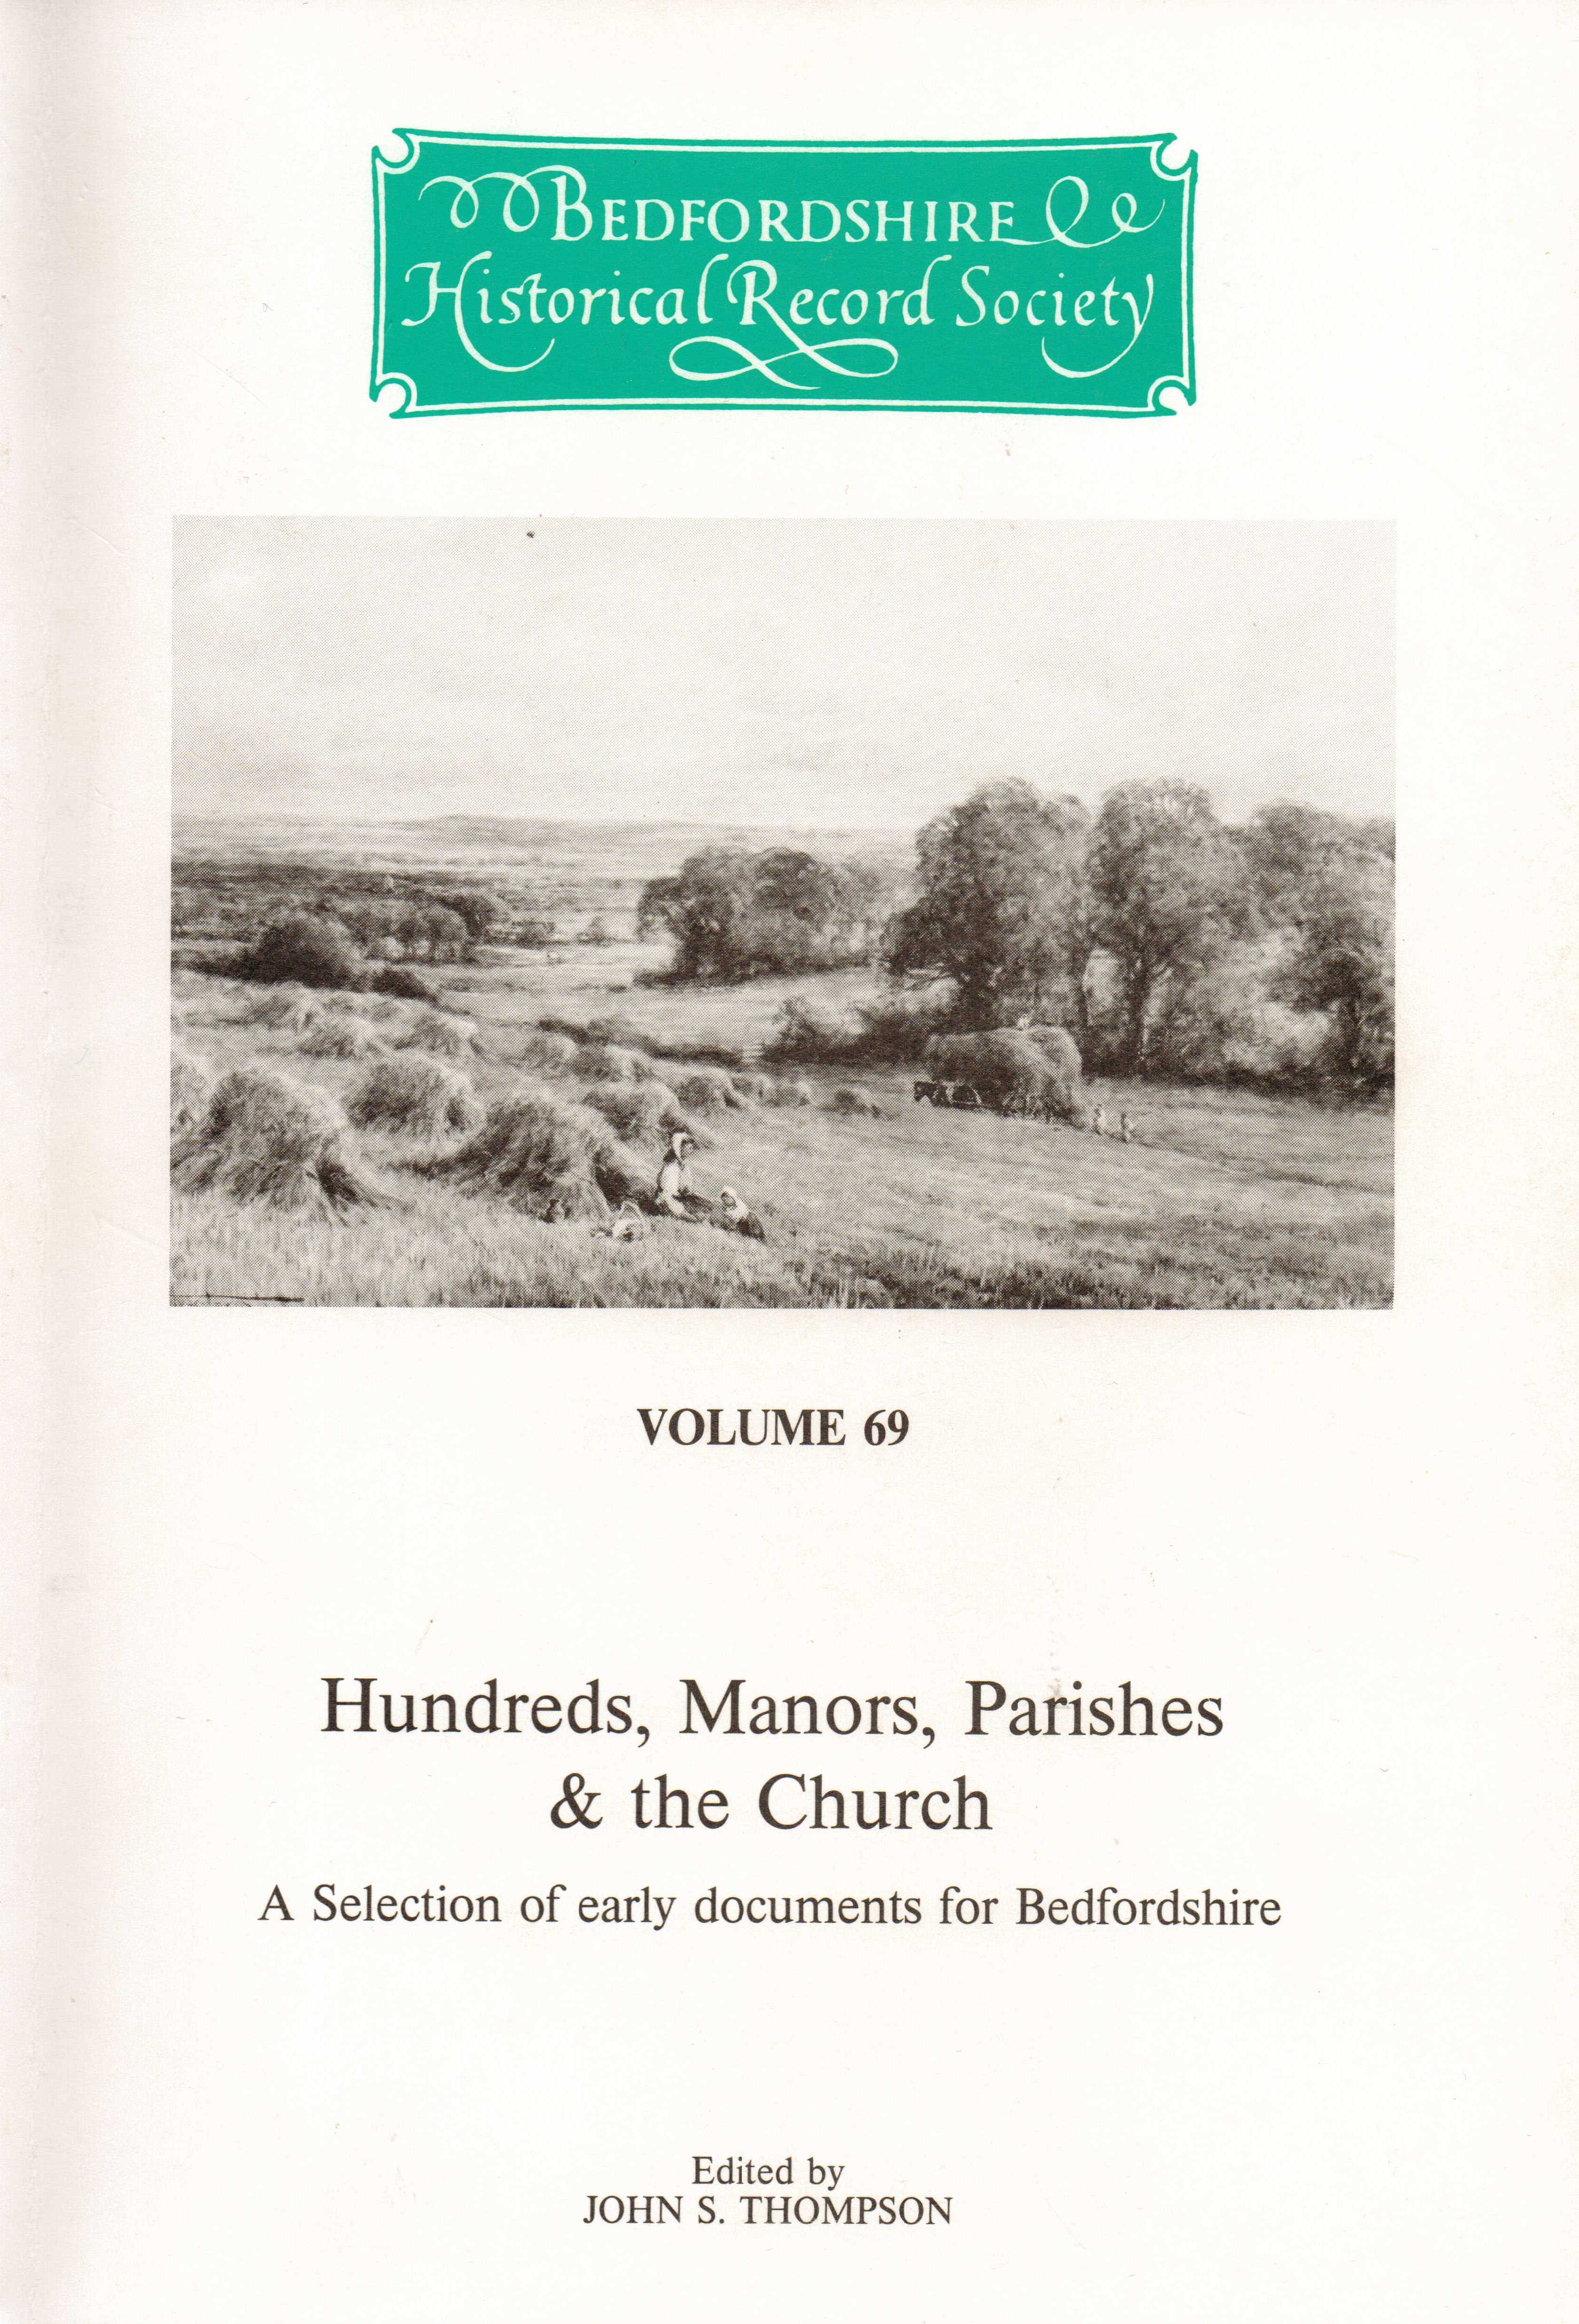 Hundreds, Manors, Parishes and the Church